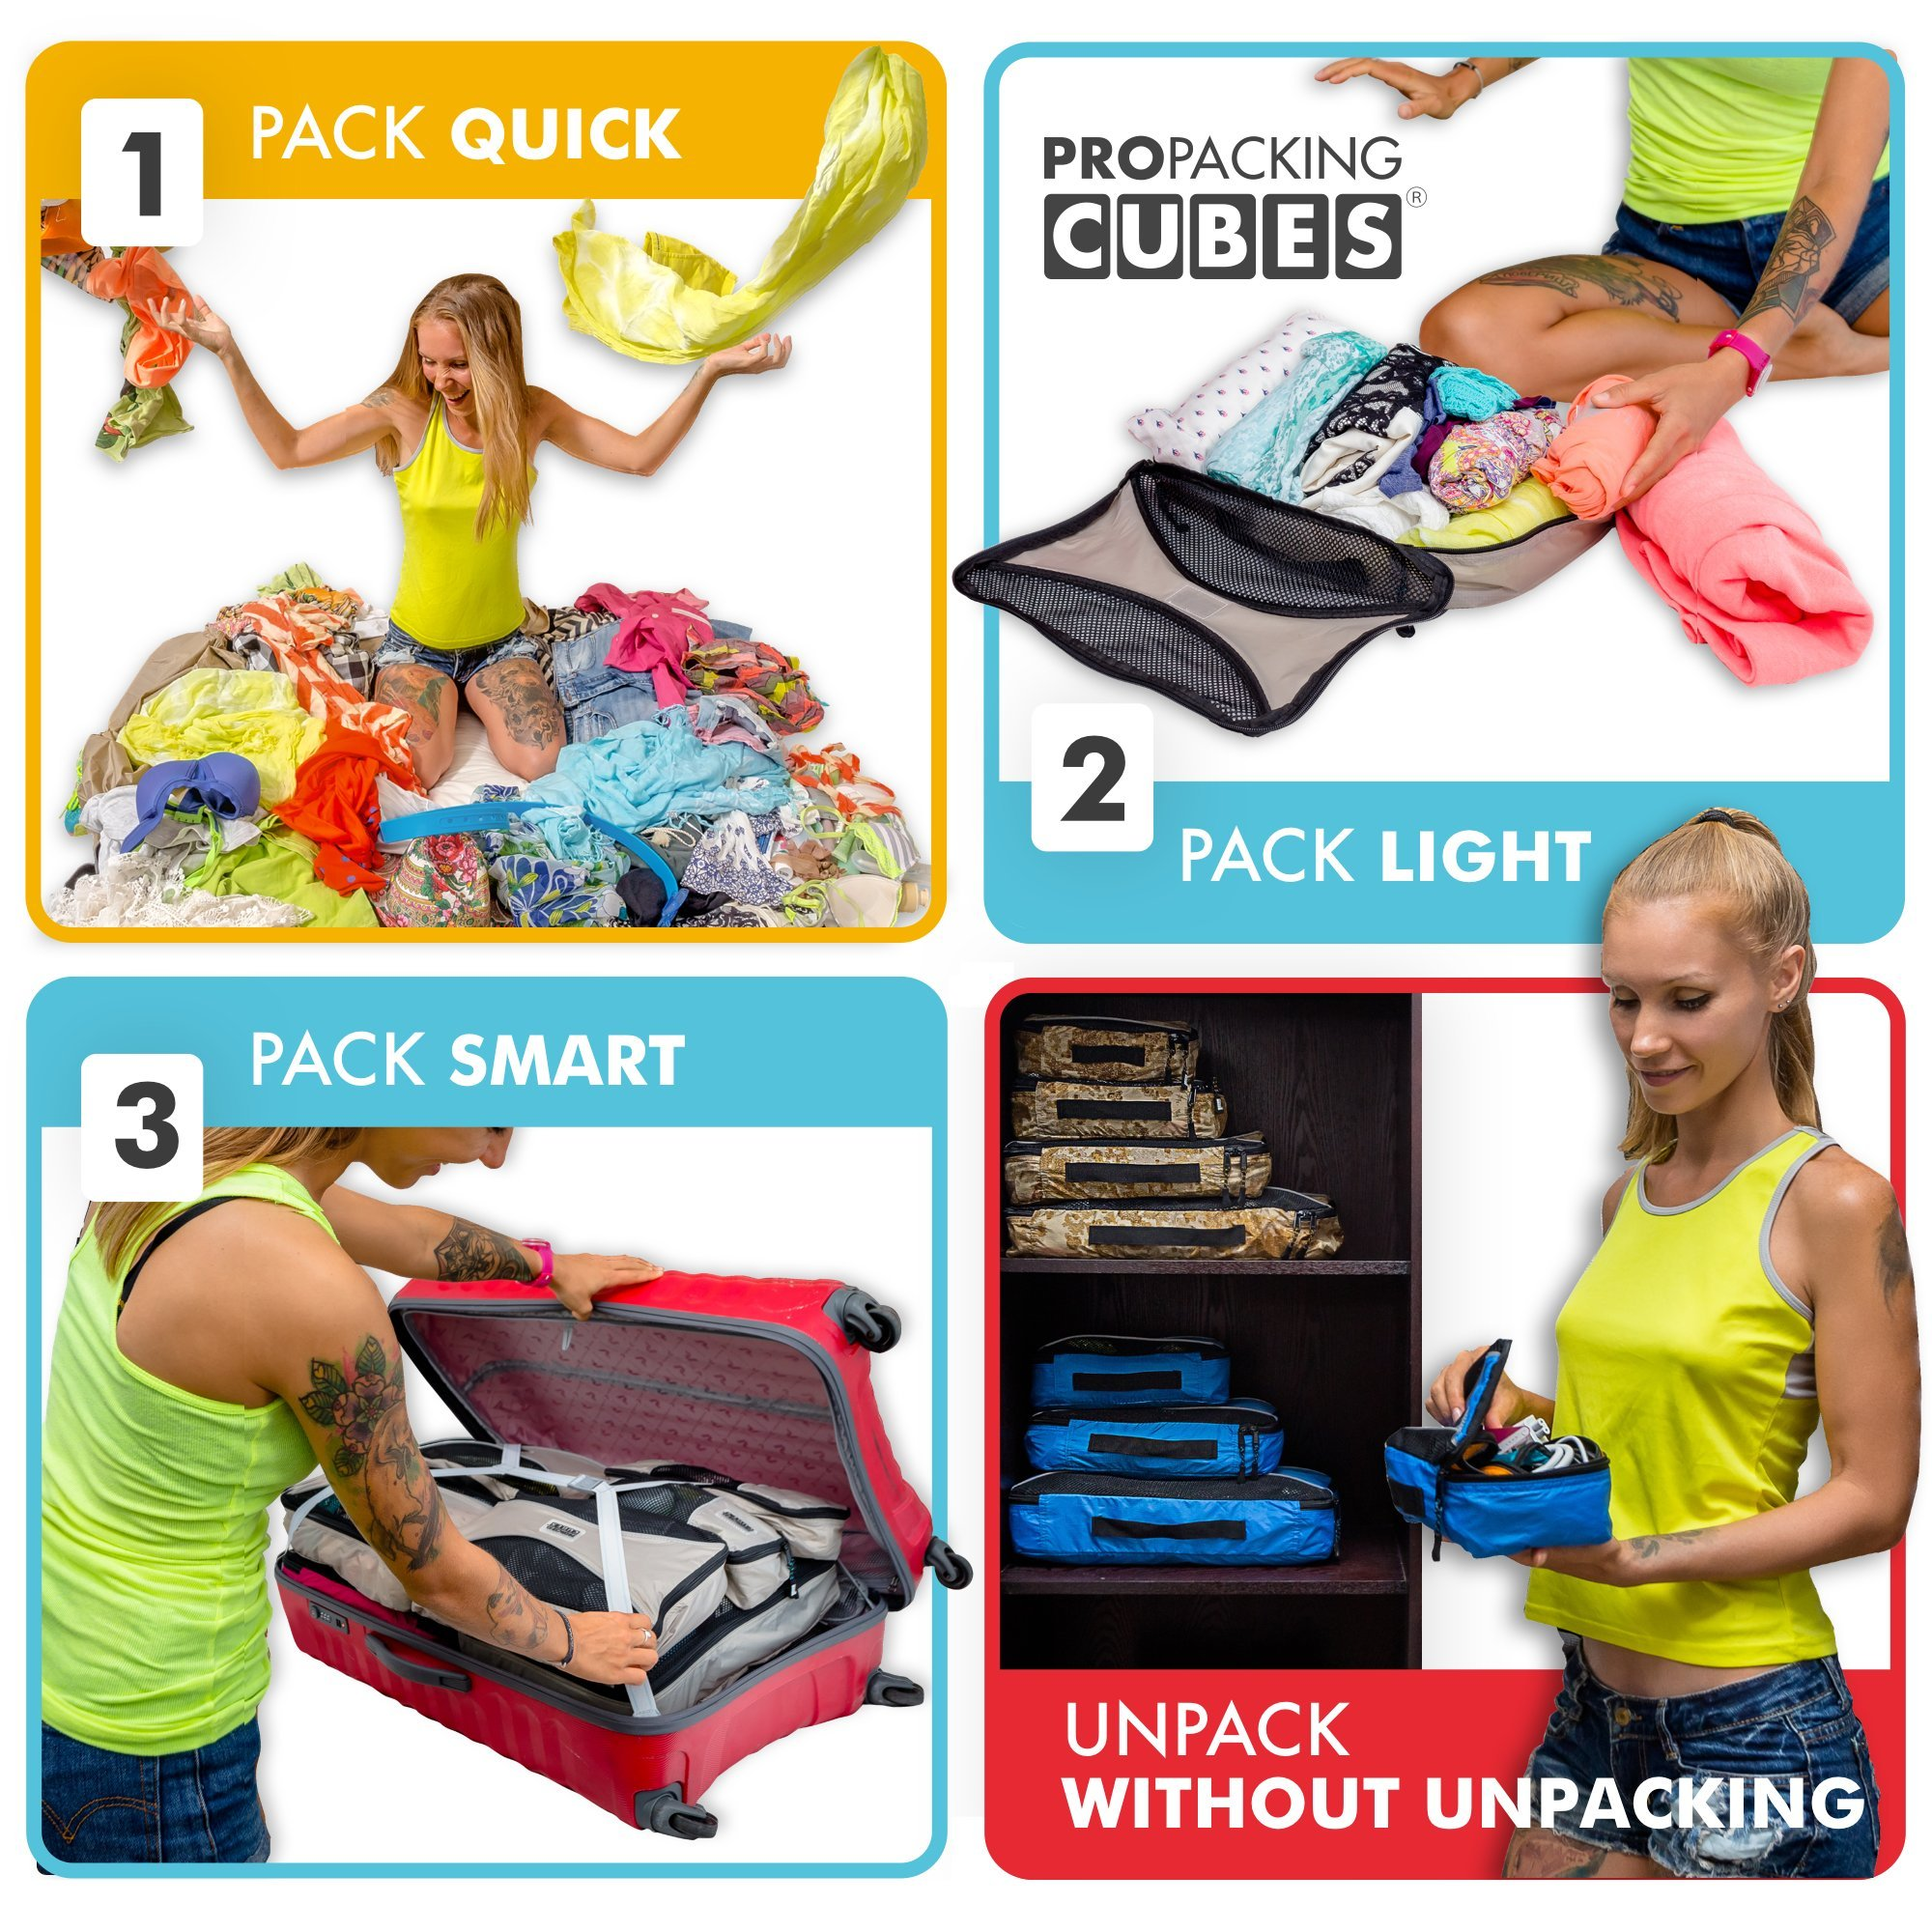 PRO Packing Cubes  Lightweight Travel - Packing for Carry-on Luggage, Suitcase and Backpacking Accessories Set, Mixed Colors - 4 Piece by Pro Packing Cubes (Image #7)